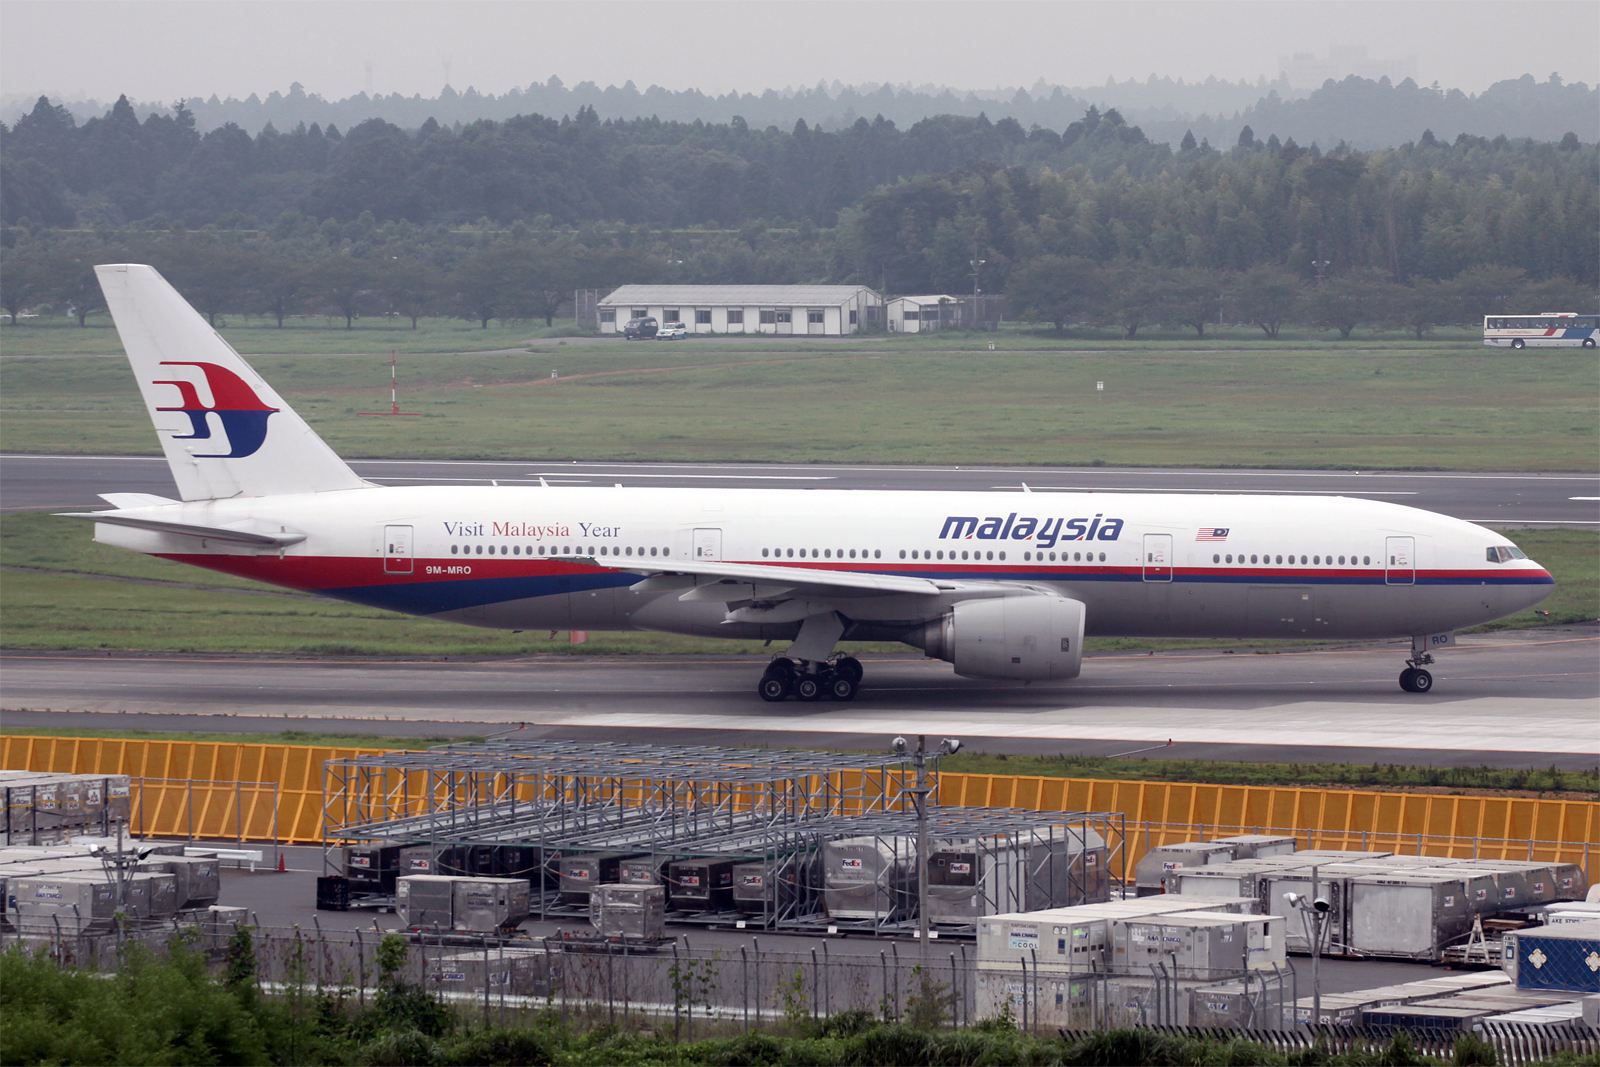 Malaysia Airlines Mh370 Passenger And Crew Names And